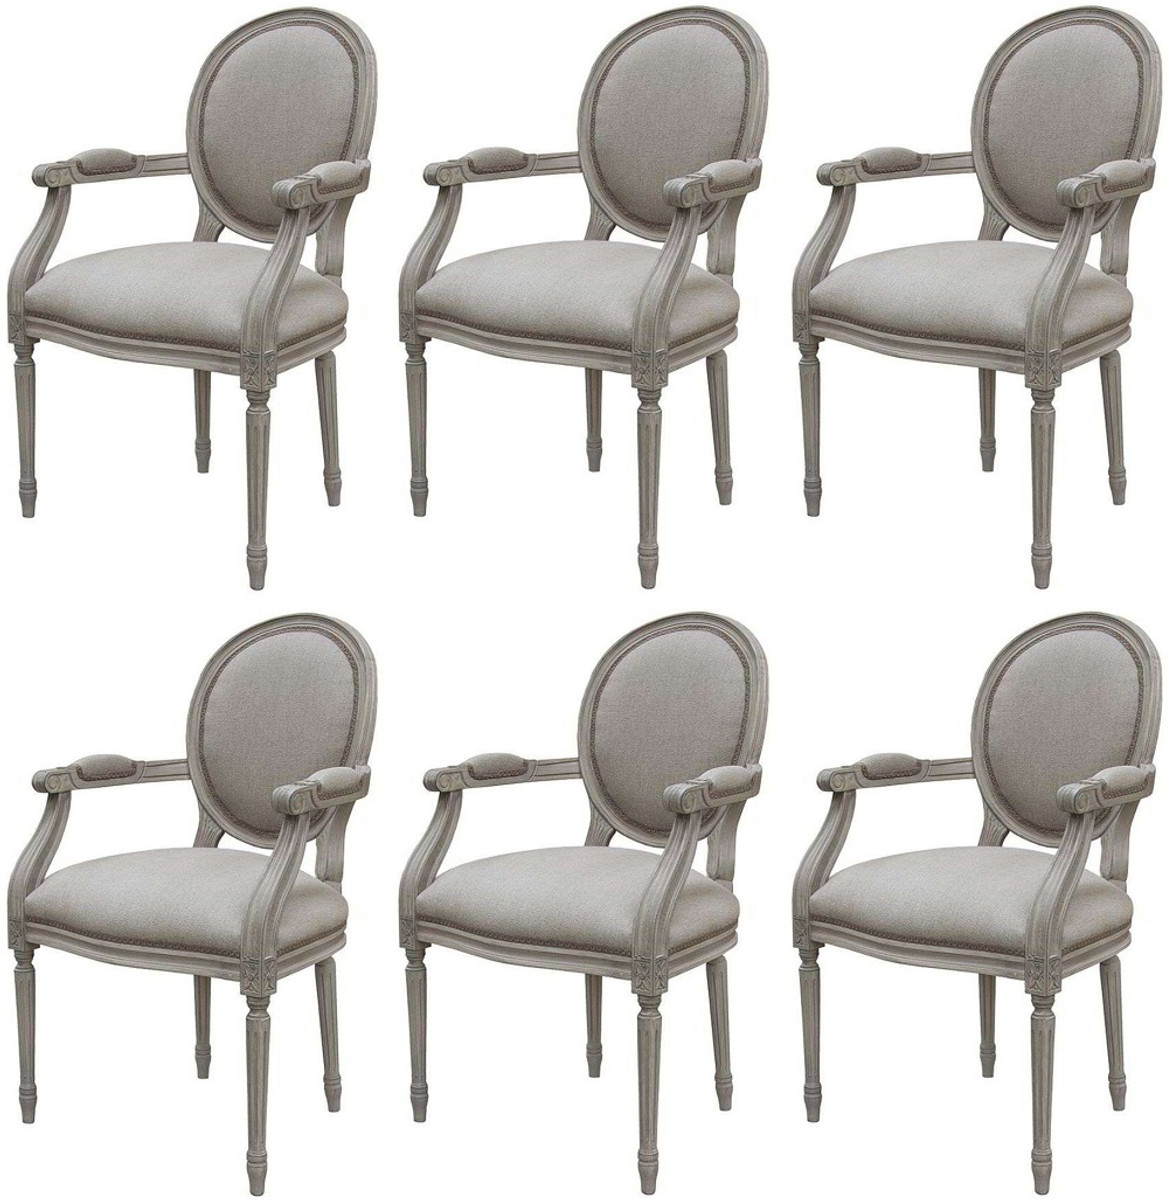 Casa Padrino Luxury Baroque Dining Room Chair Set Medallion Gray 57 X 50 X H 95 Cm Handmade Dining Room Chairs With Armrests In Baroque Style Baroque Dining Room Furniture Luxury Quality